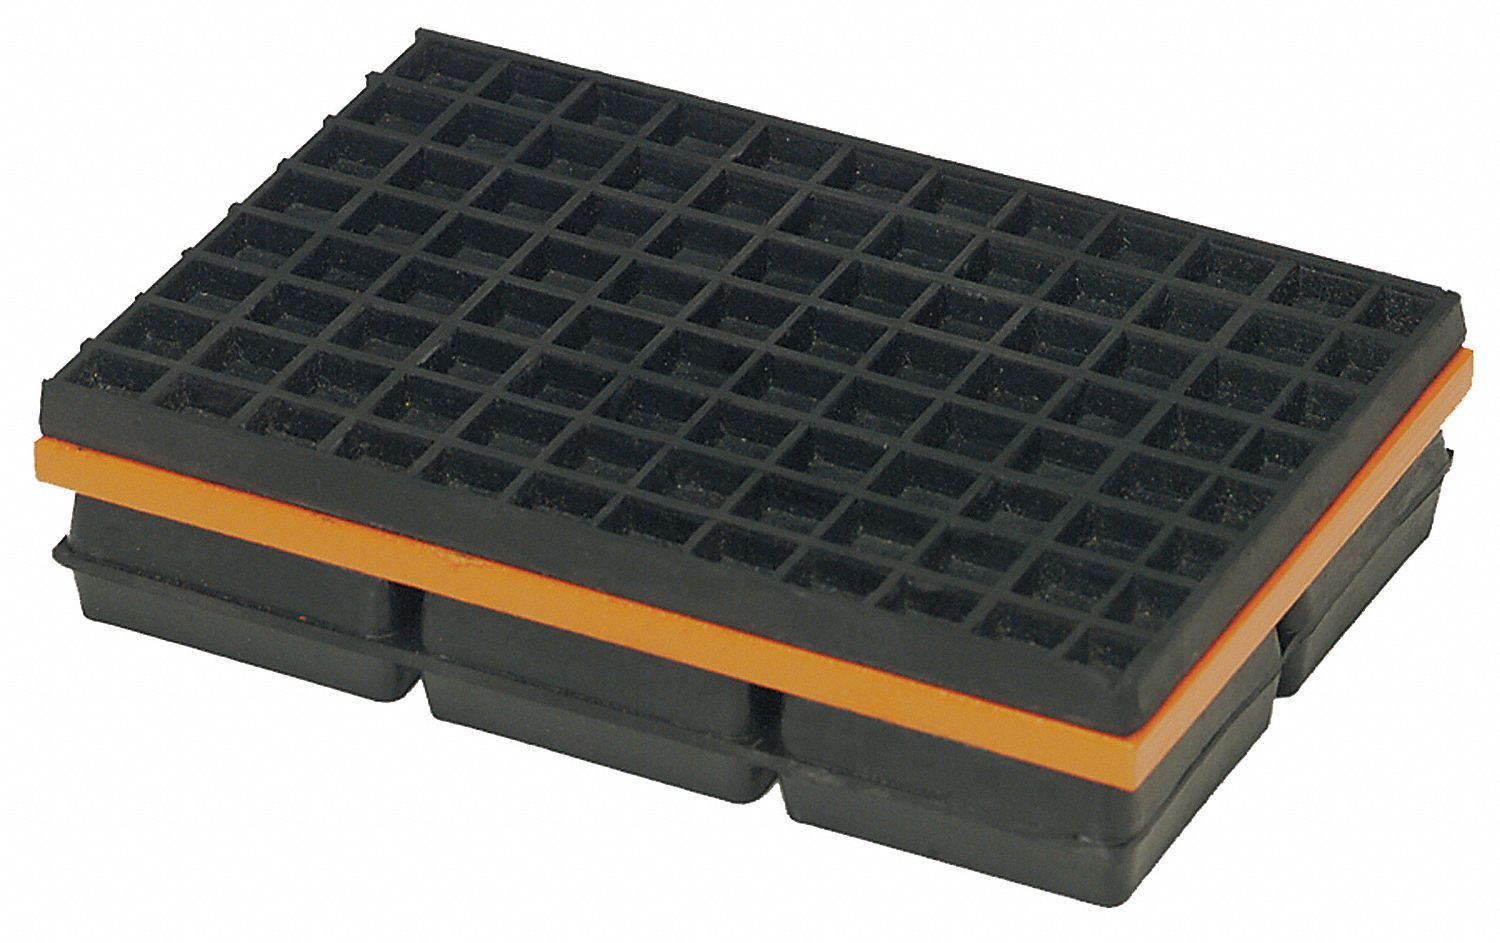 package with 2 MASON 4C976A VIBRATION ISOLATOR PADS